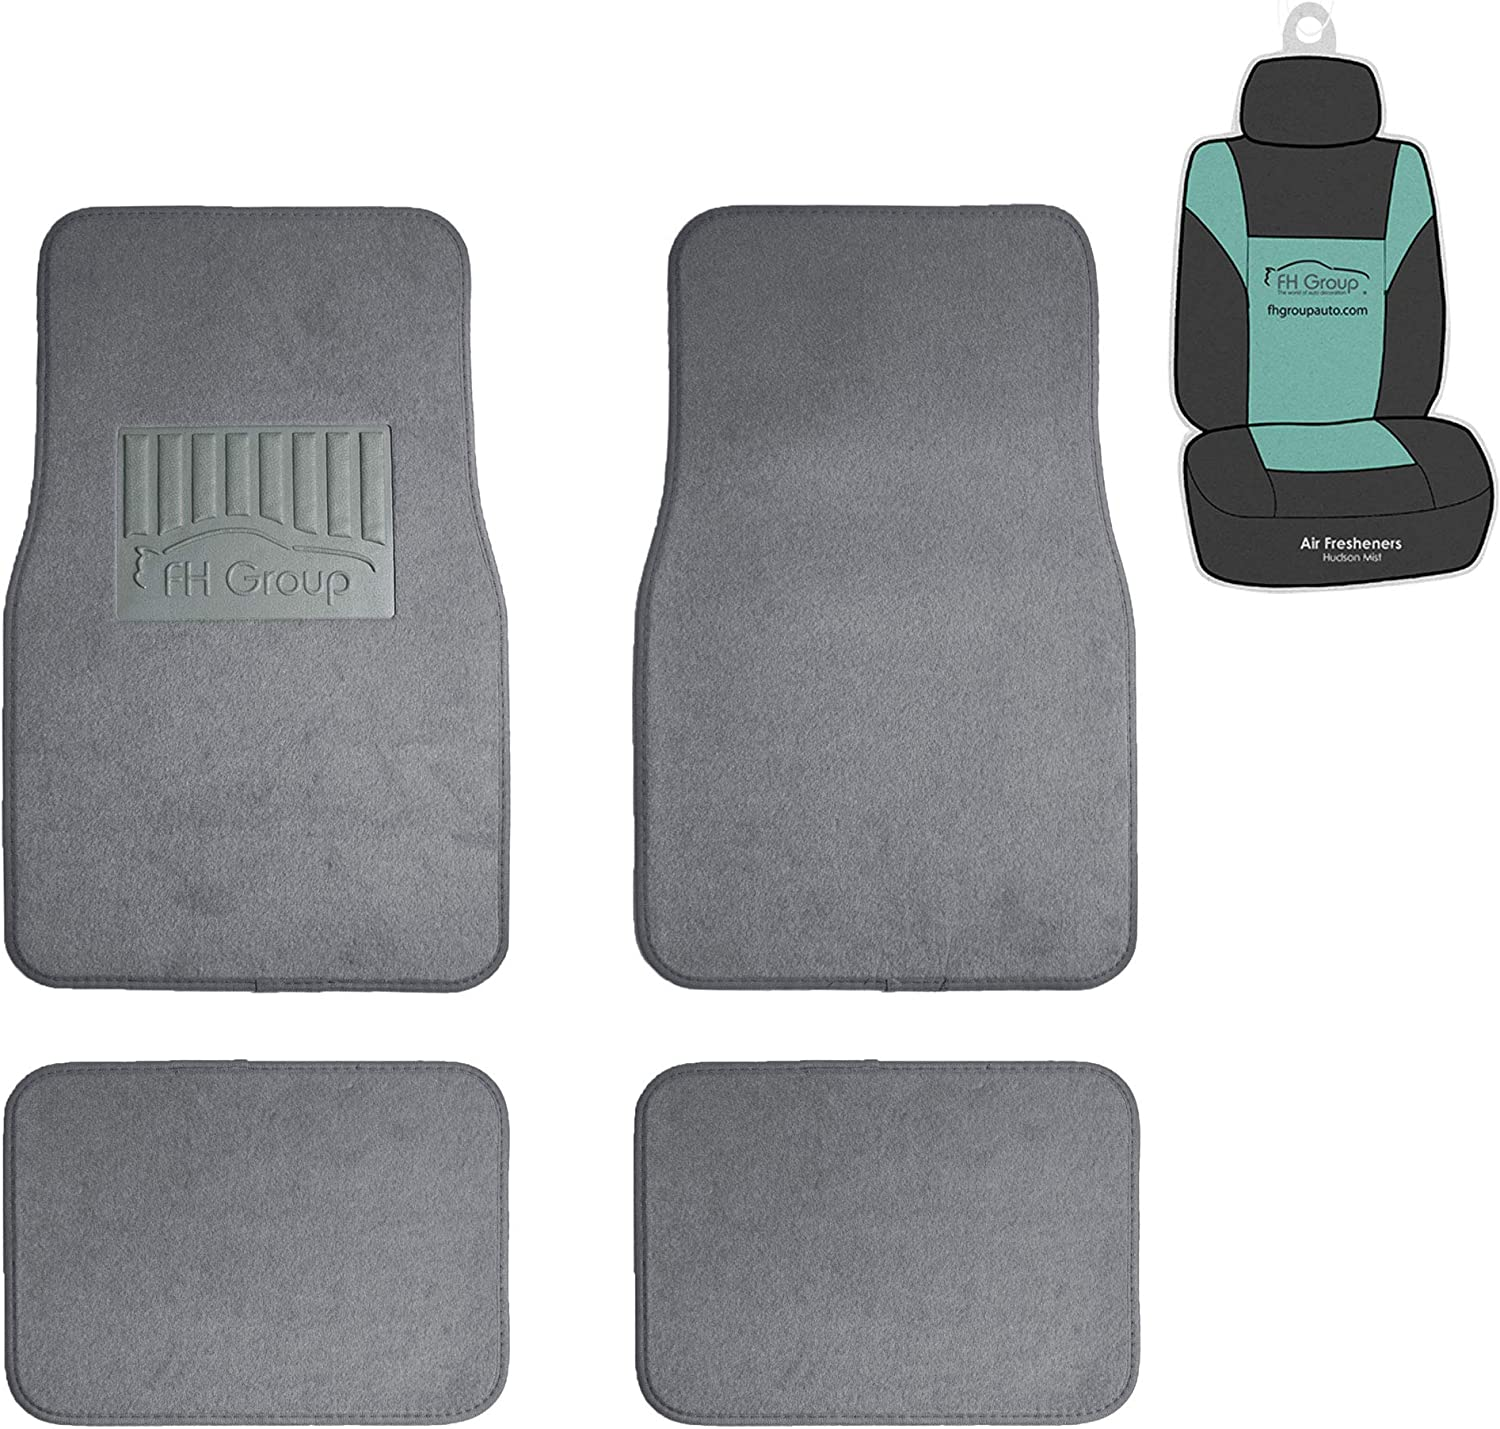 FH Group F14402 Premium Carpet Floor Mats with Heel Pad (Gray) Full Set with Gift - Universal Fit for Cars Trucks and SUVs